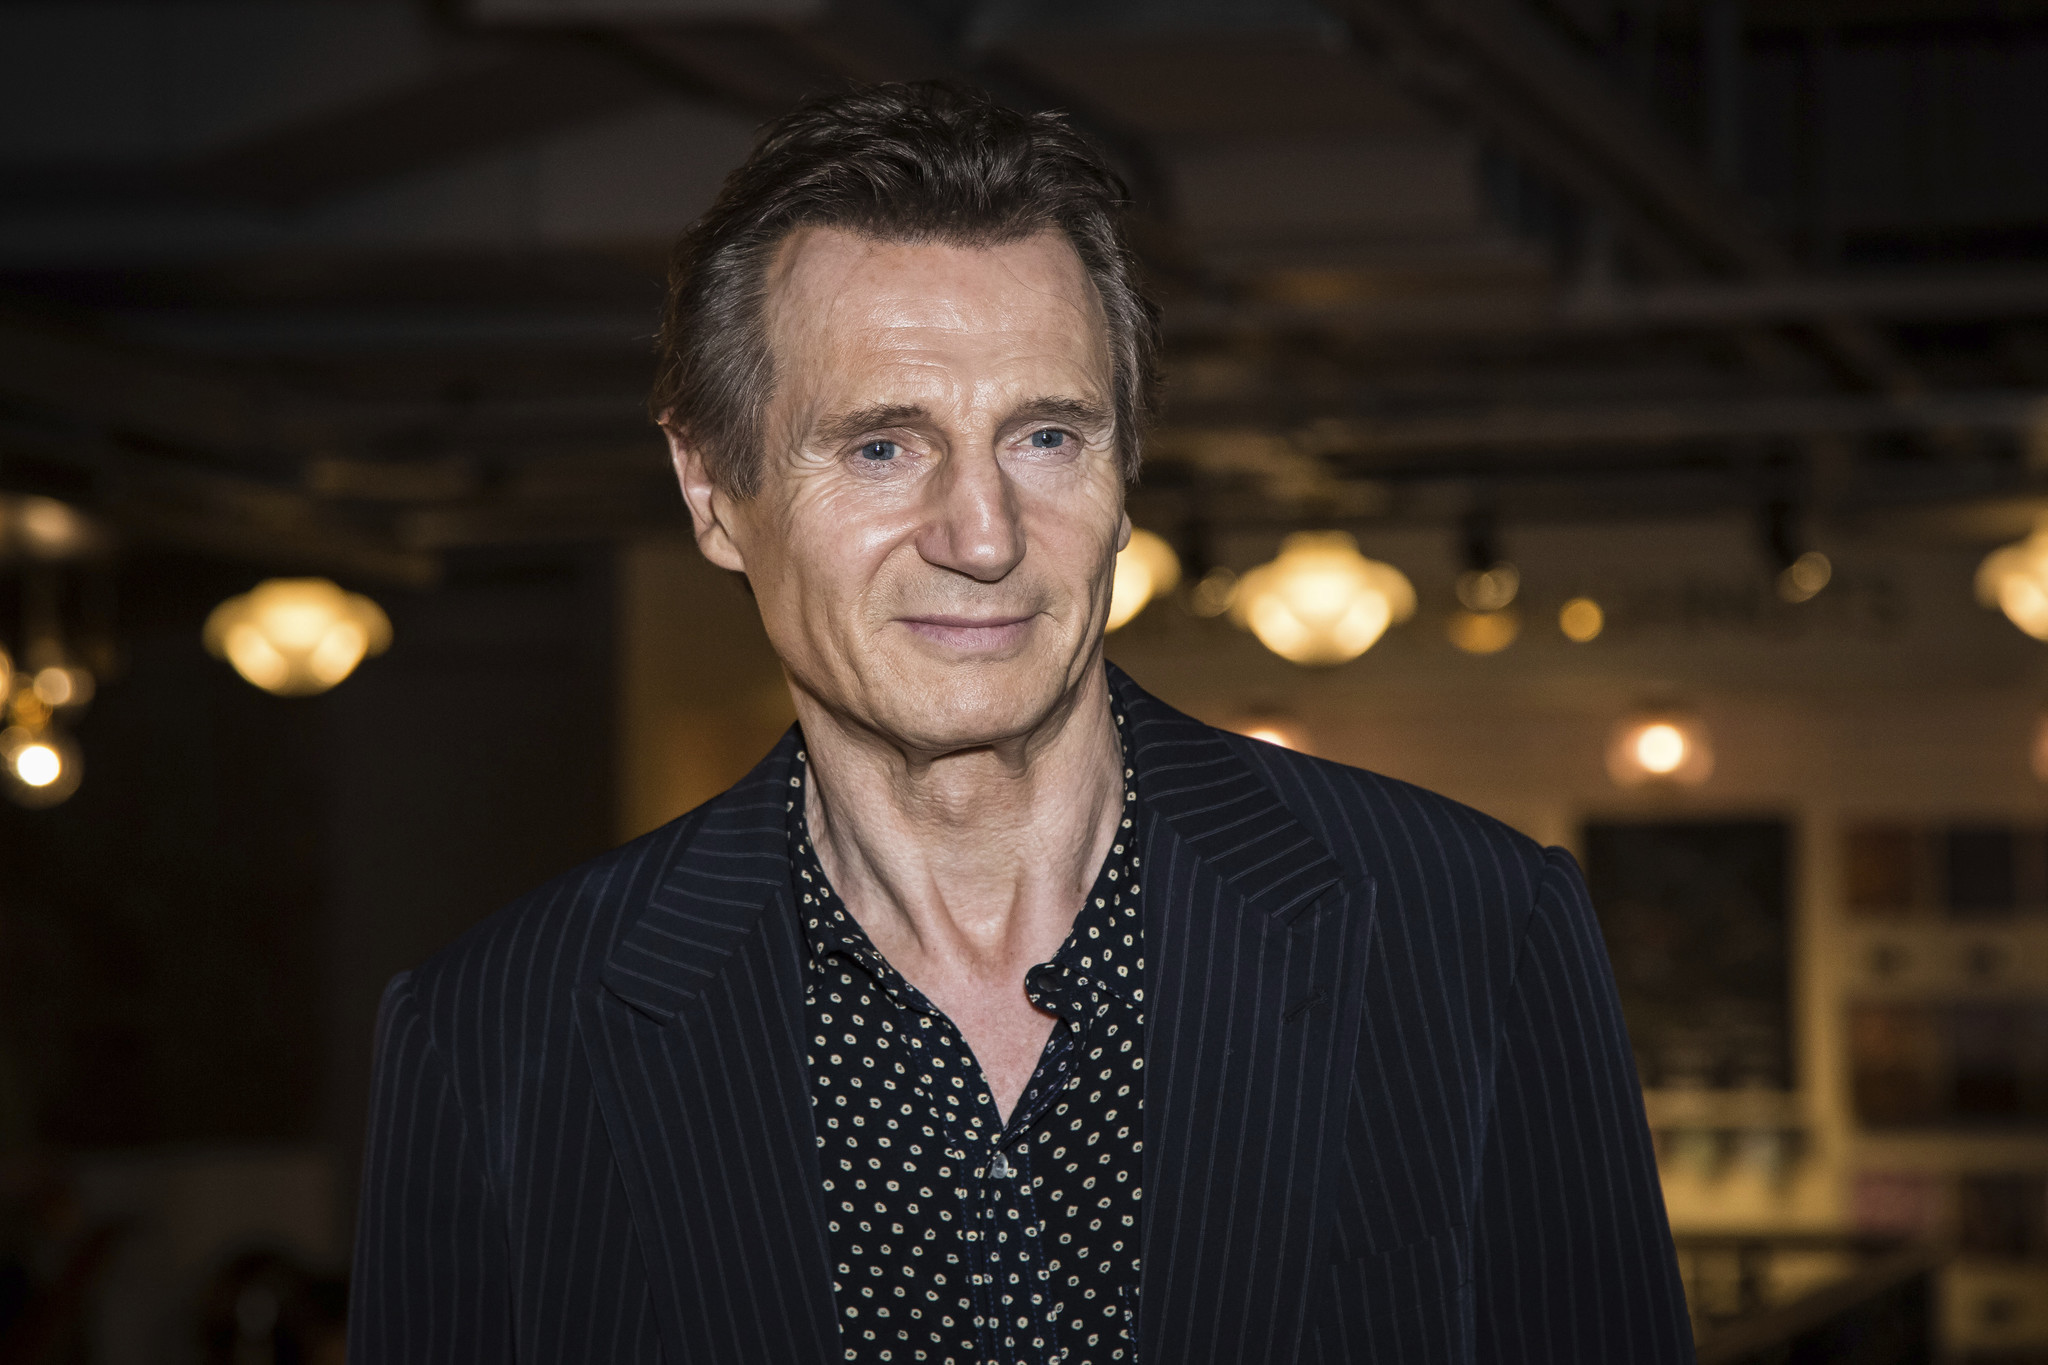 Liam Neeson's favorite role is an unexpected one